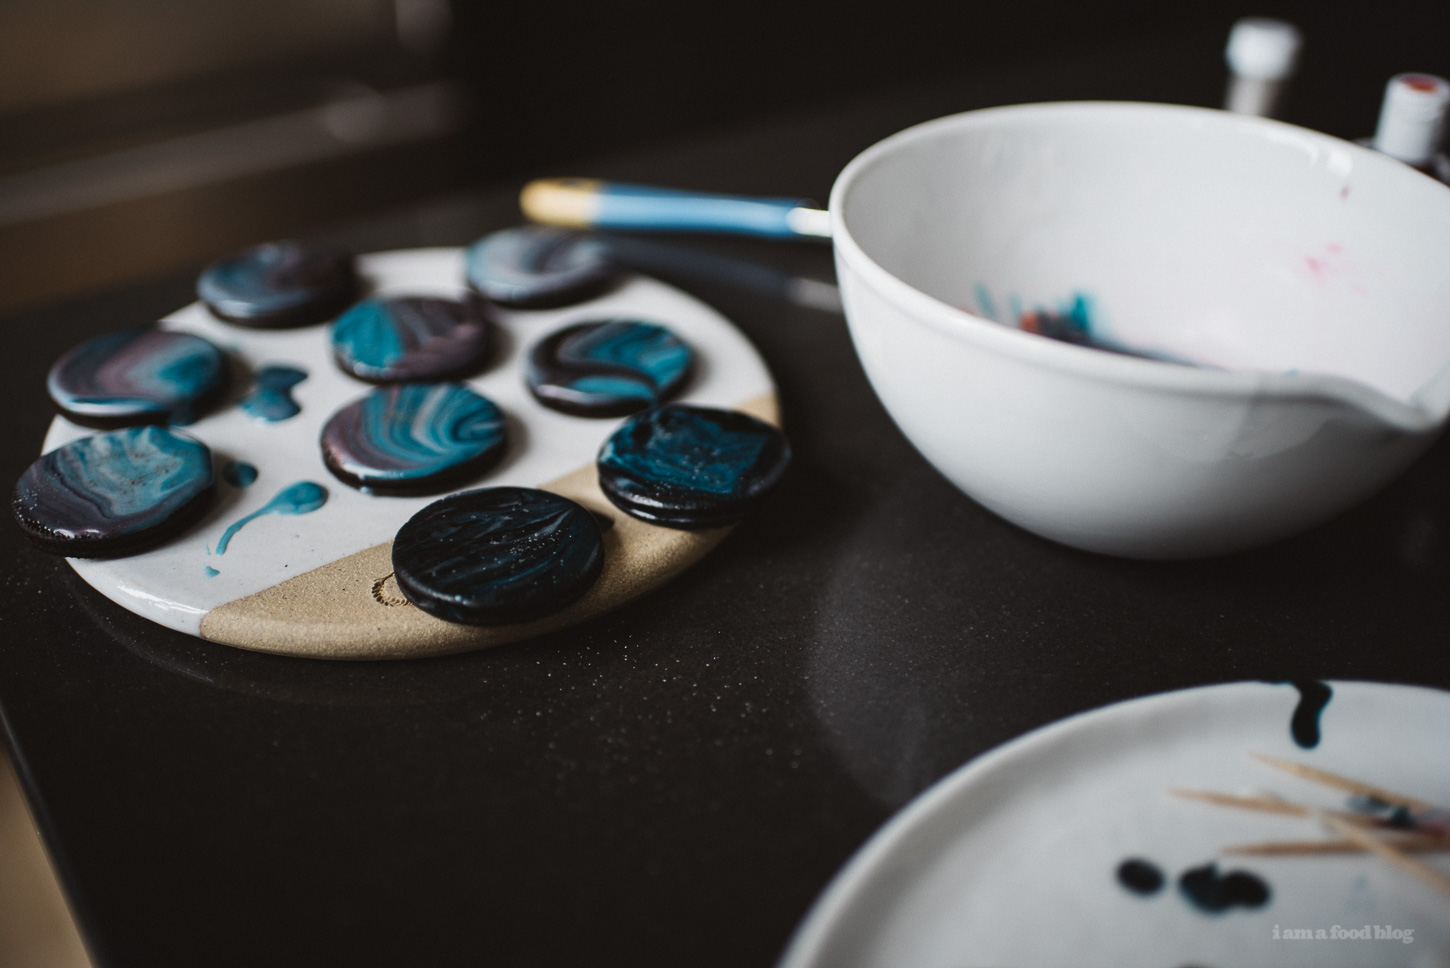 how to make galaxy glaze - www.iamafoodblog.com